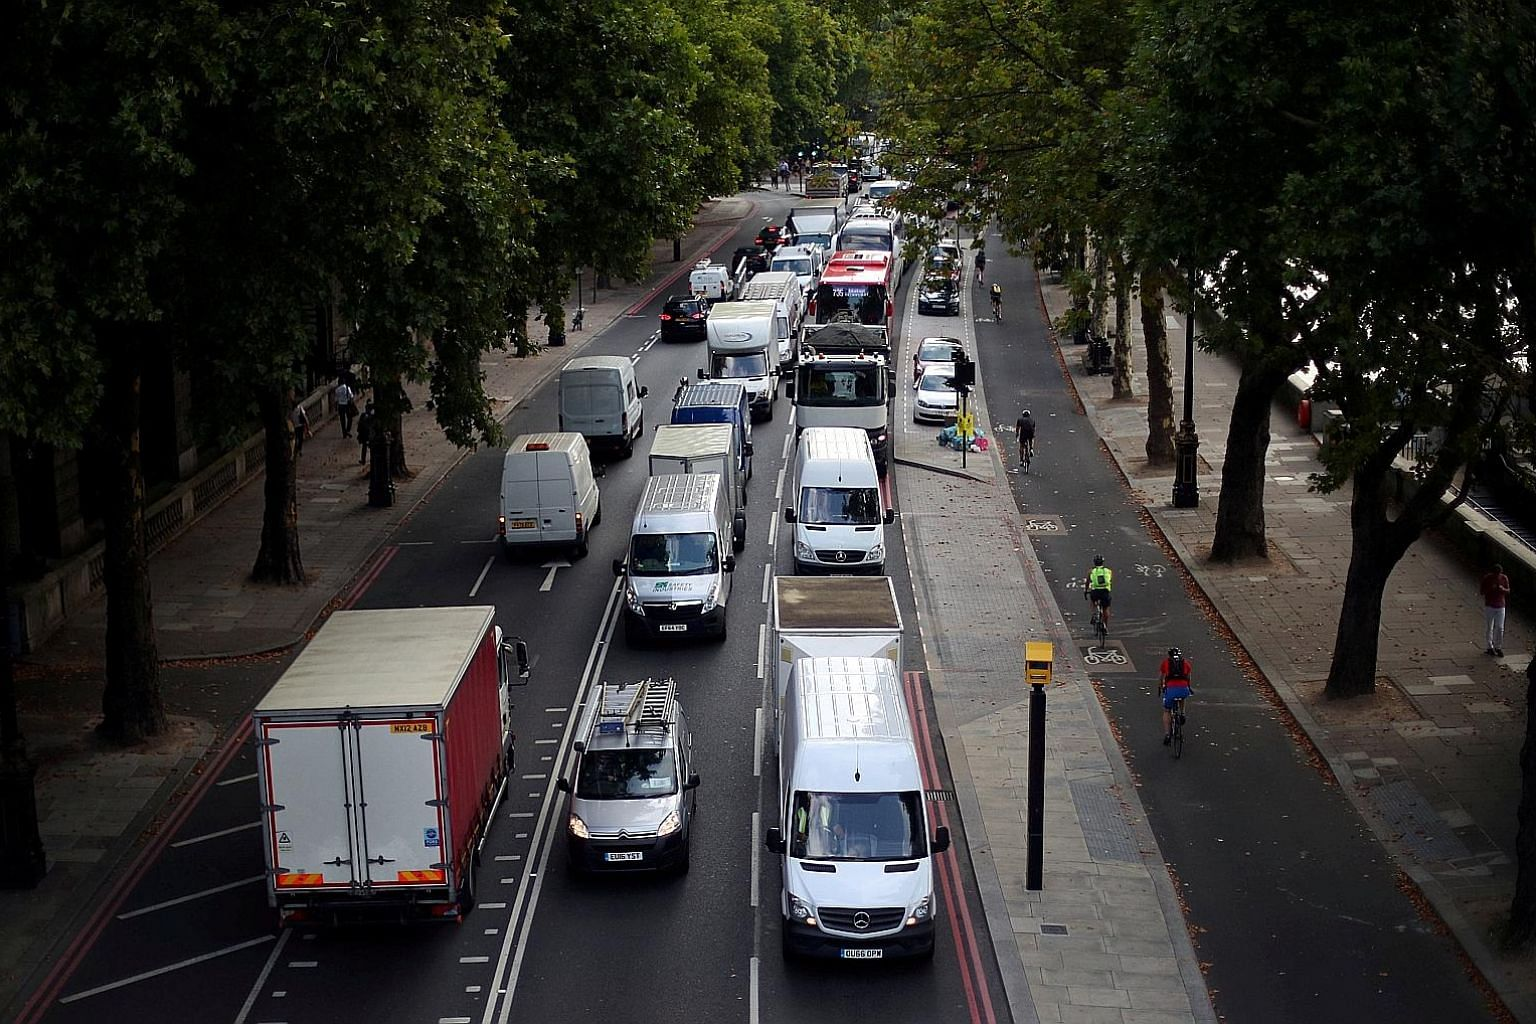 Although London's air often appears clear to the naked eye, the city has suffered from illegal levels of air pollution since 2010, with particularly dangerous levels of nitrogen dioxide, which comes mainly from diesel vehicles. This is despite dramat